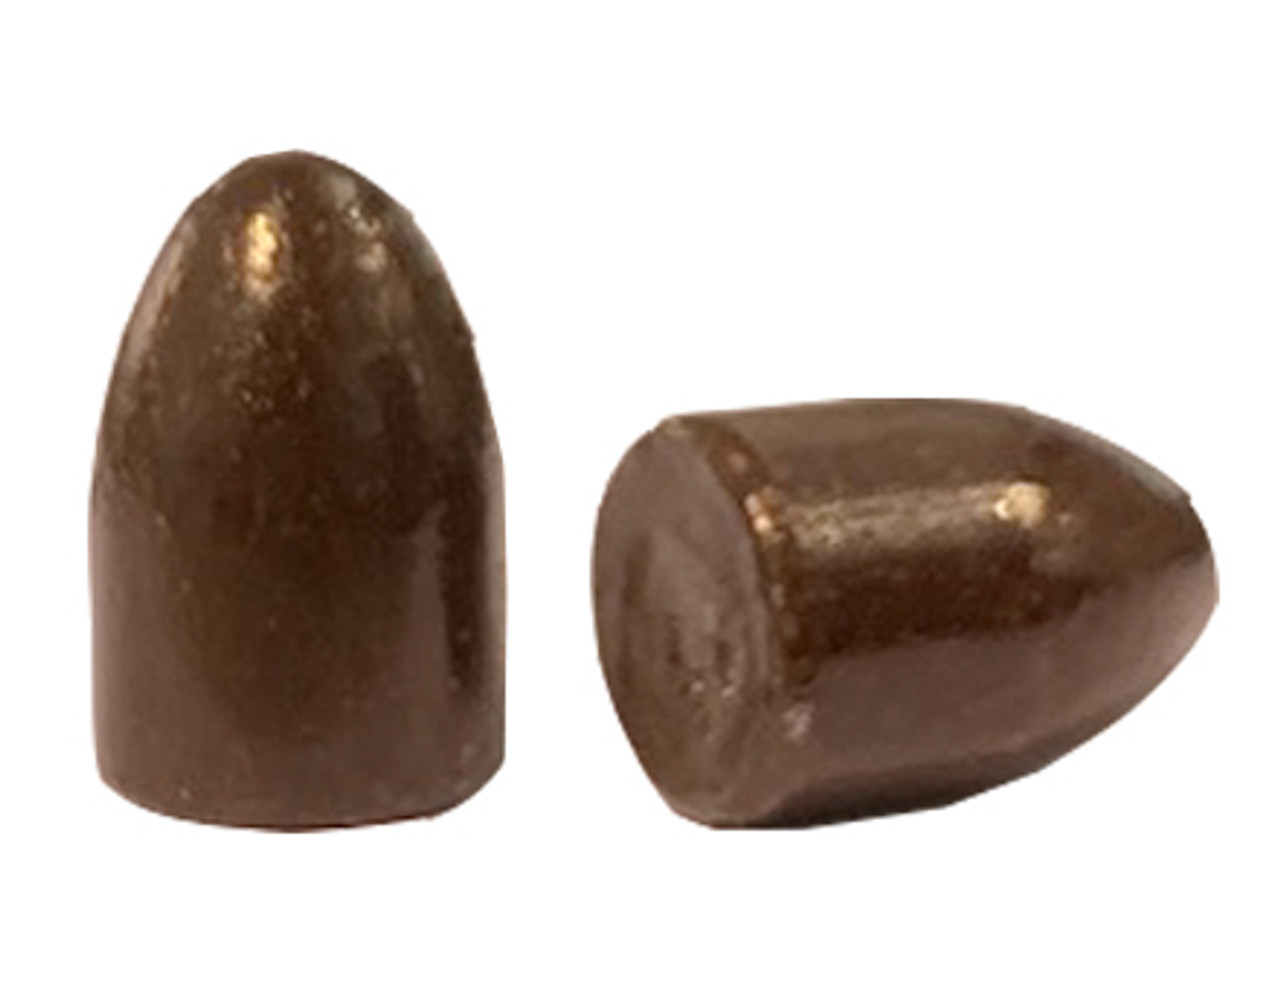 38/357 and 9 MM Round Nose No Lube Groove Coated Bullet